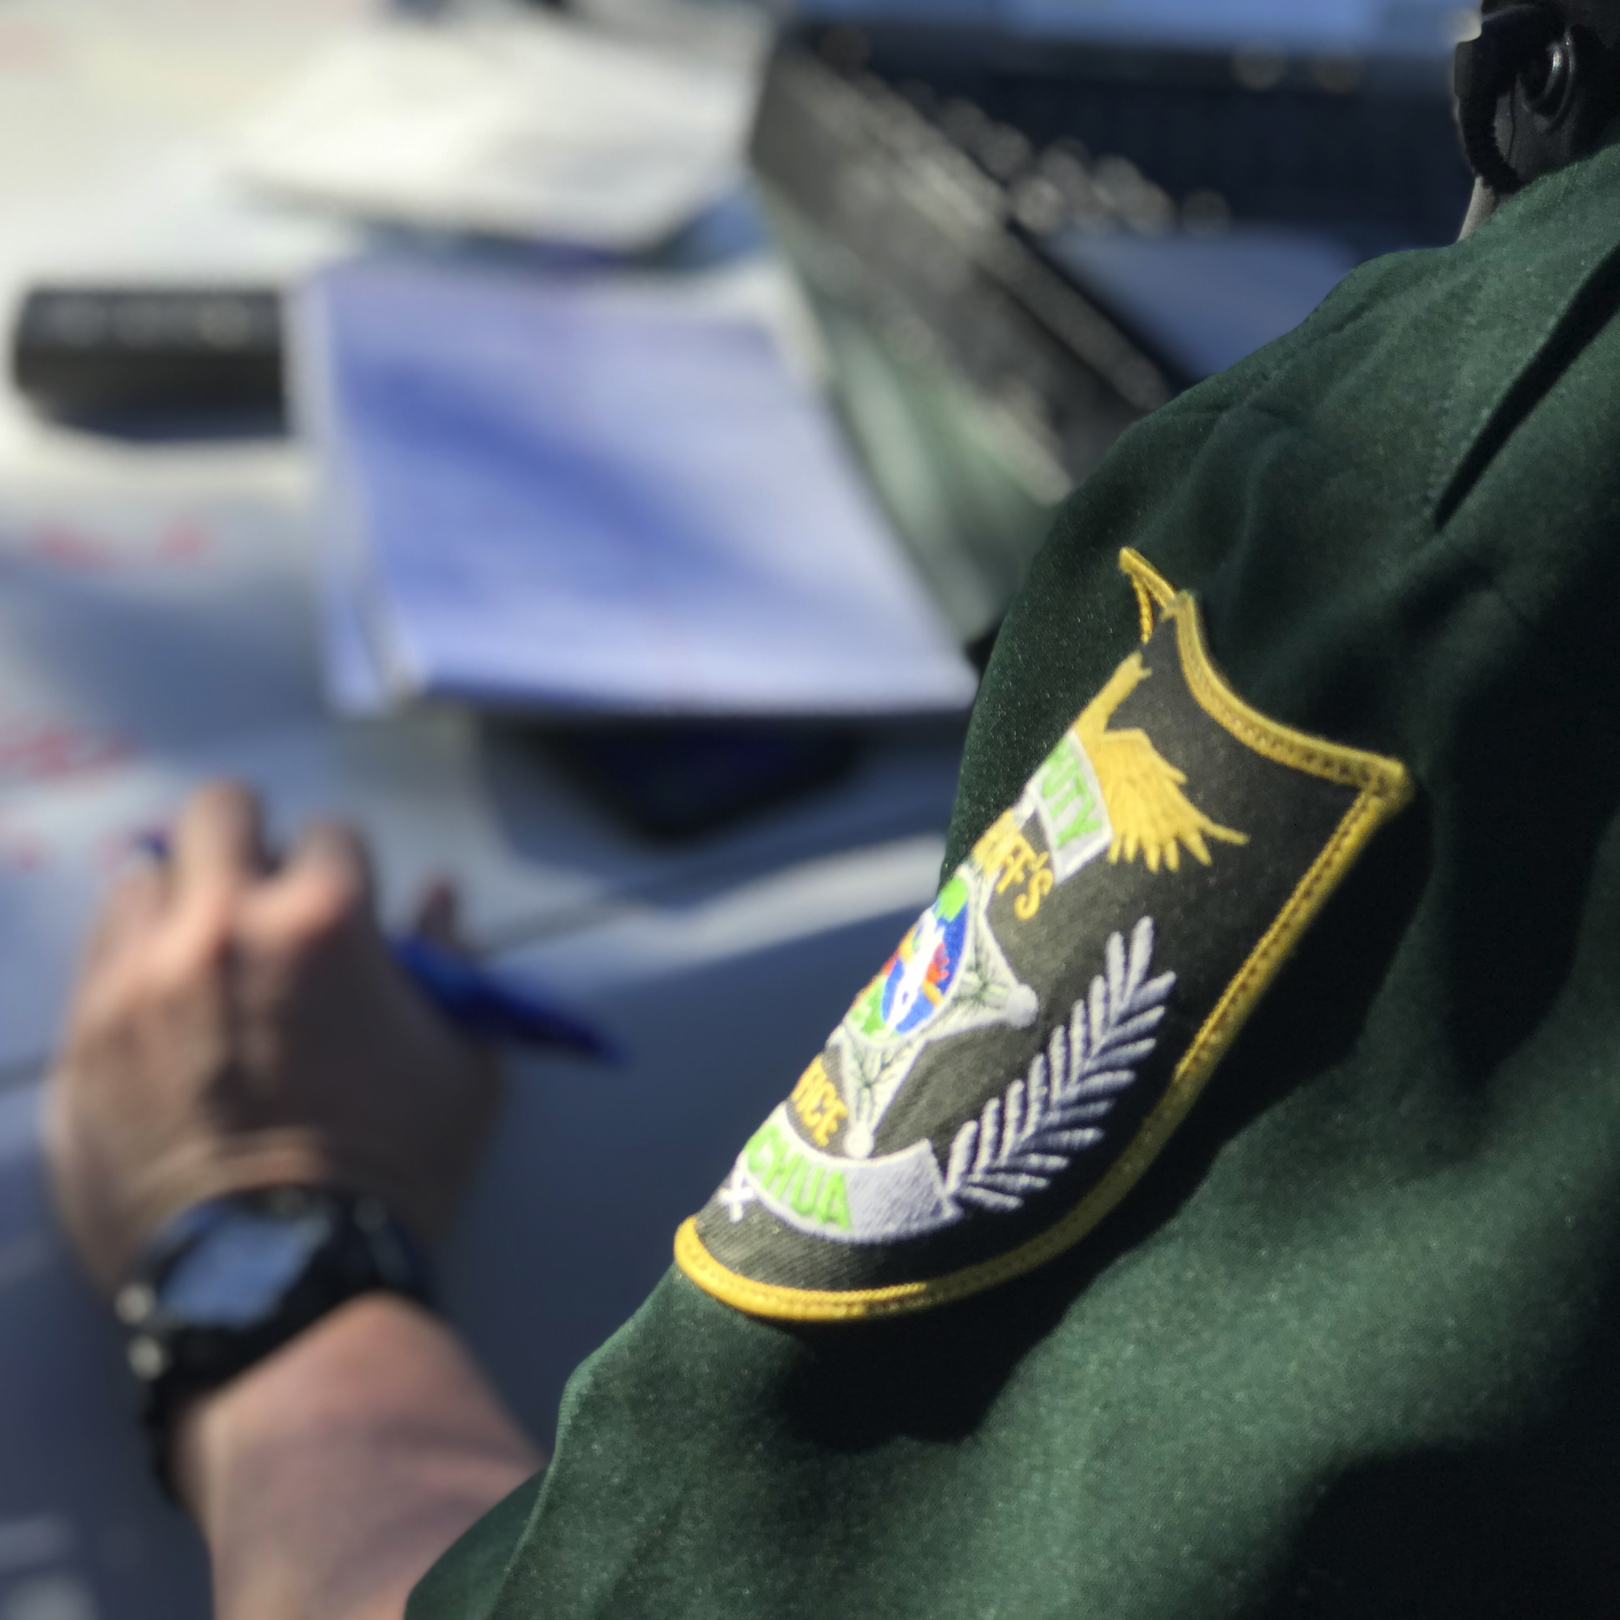 What's Happening Now at the Alachua County Sheriff's Office: News Releases, Offender Information, and Messages from your Sheriff